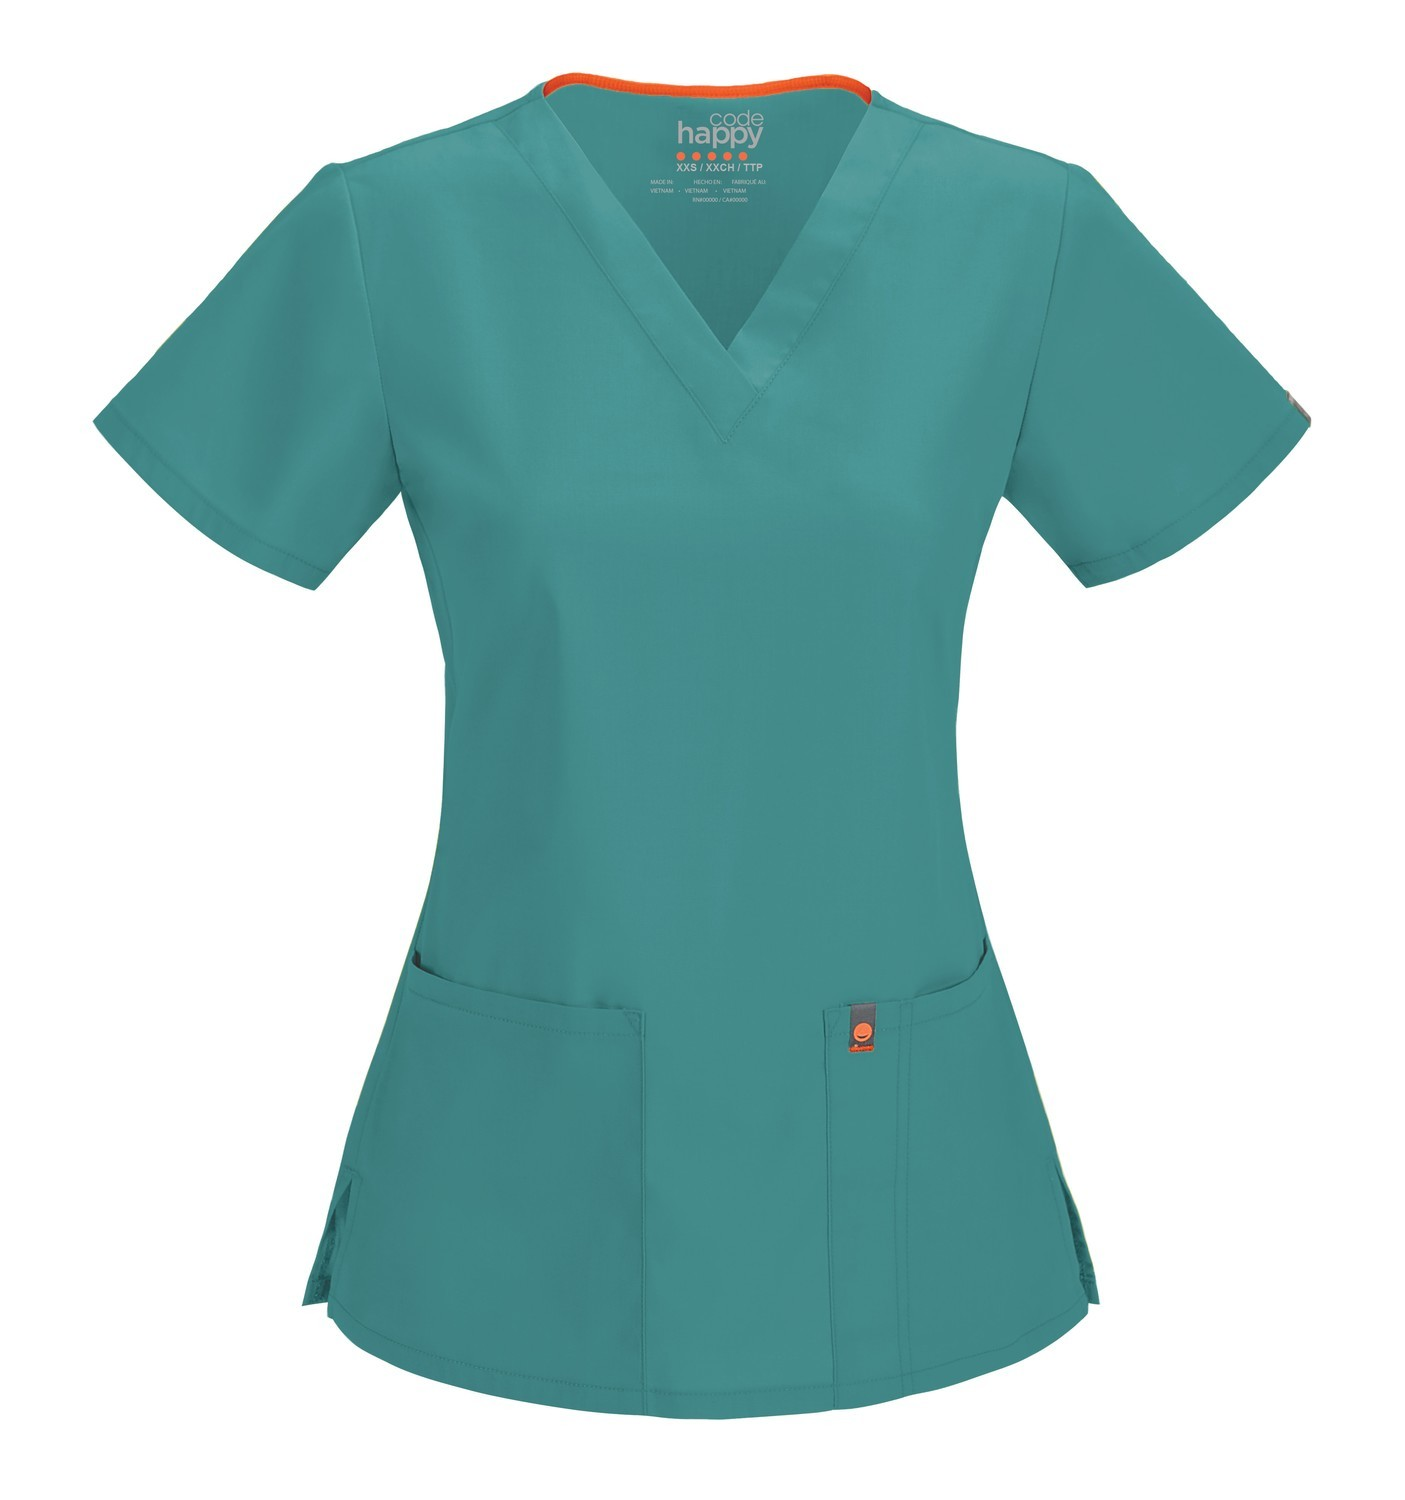 Casacca Code Happy 46607AB Donna Colore Teal